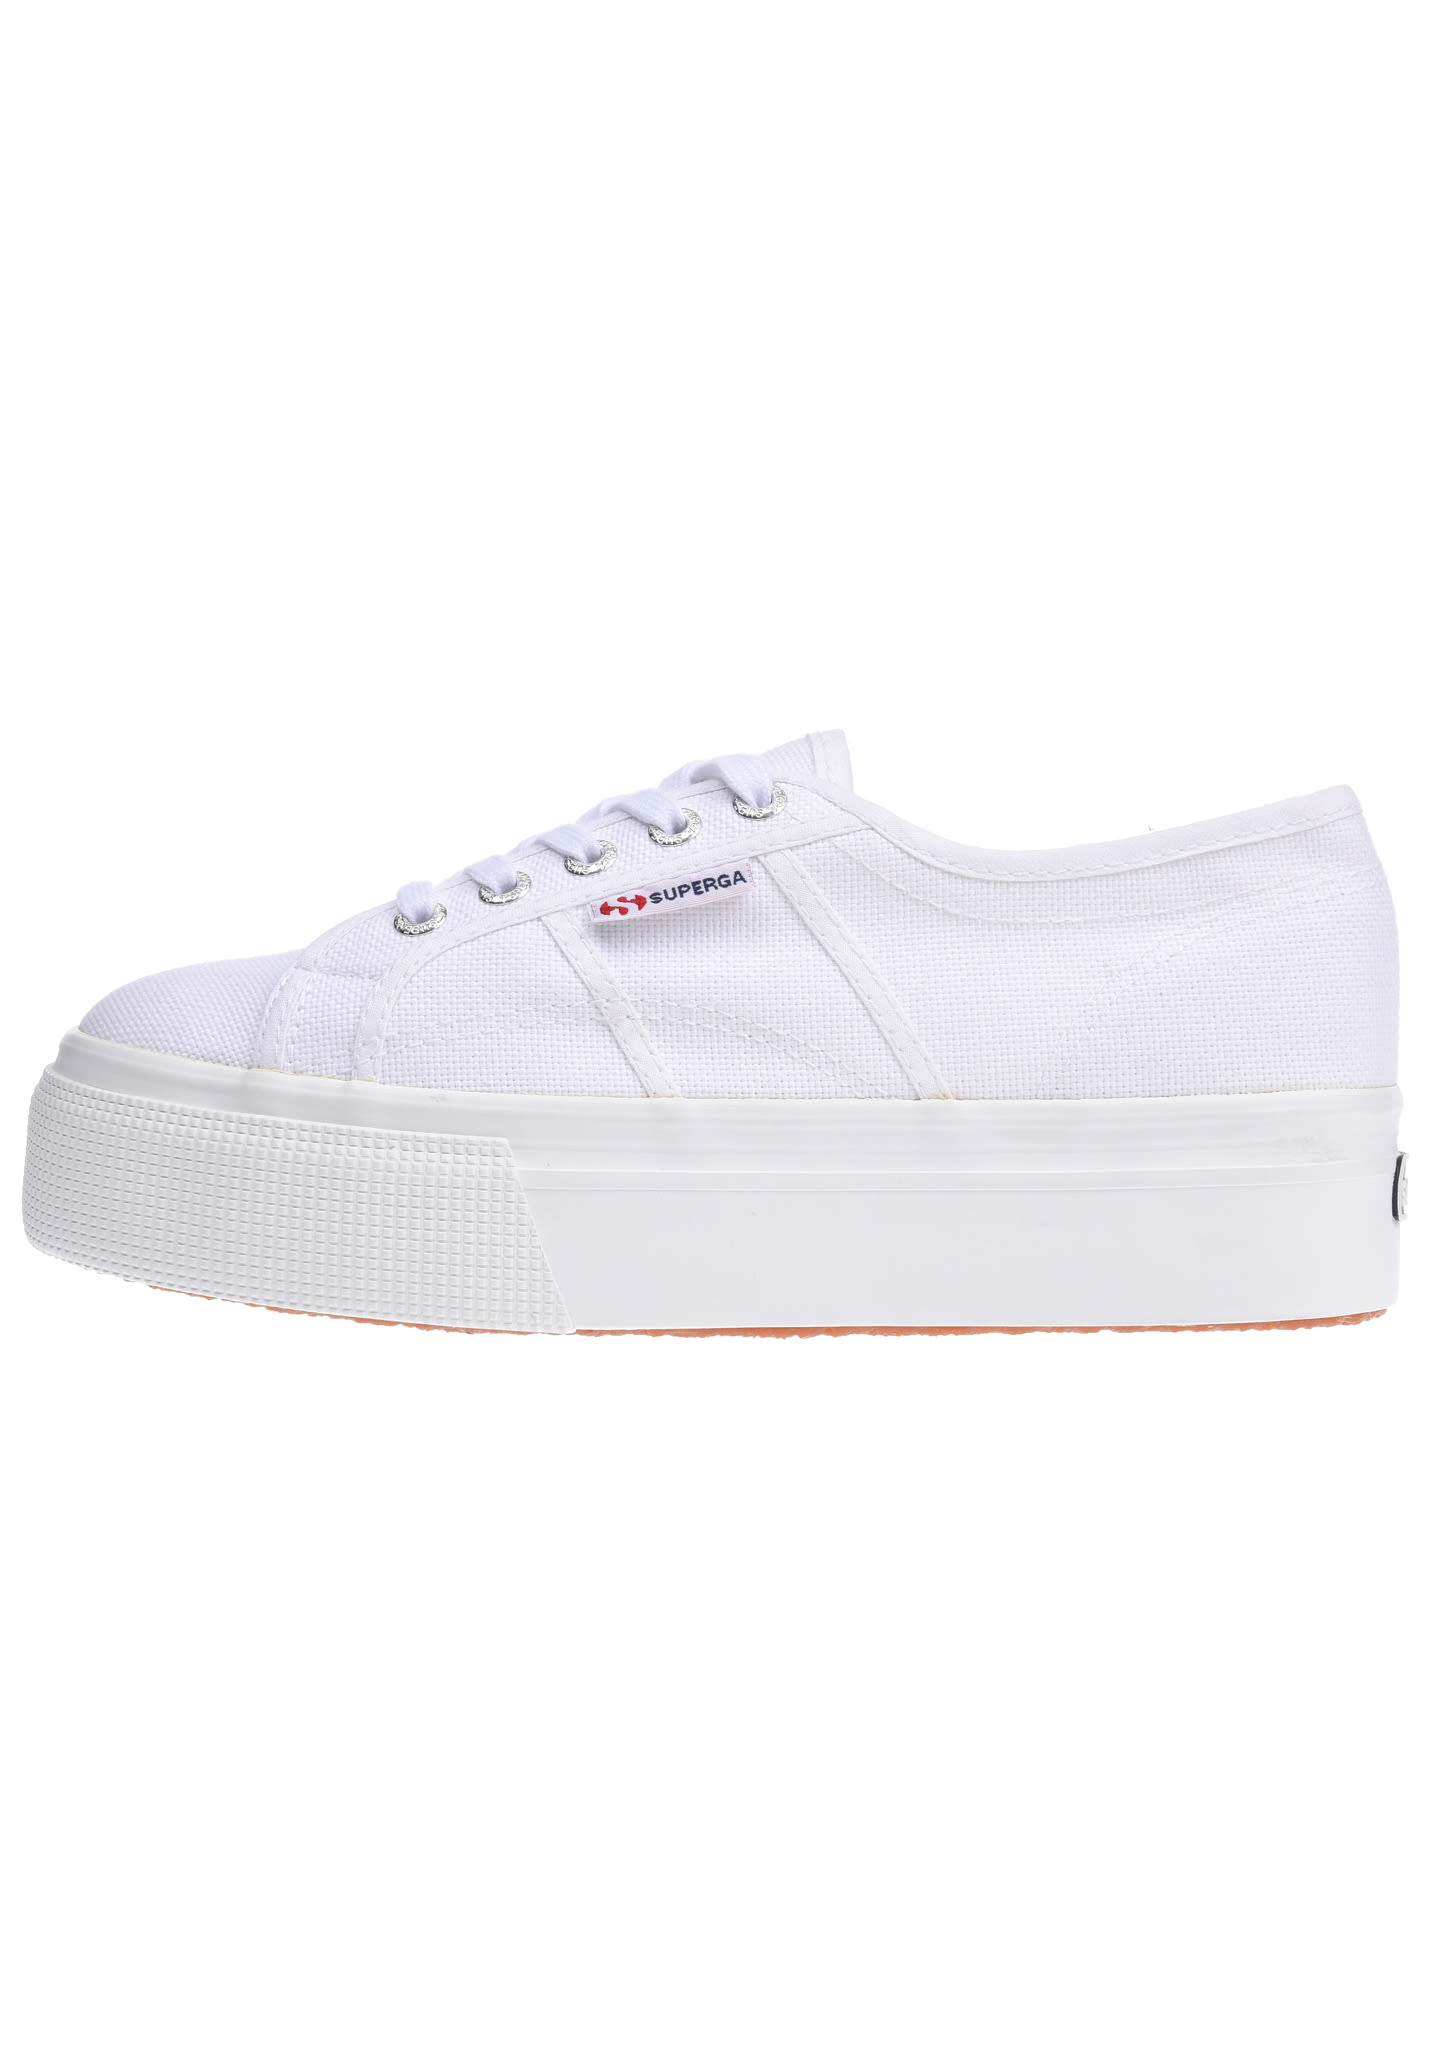 c5644cc7ec8 SUPERGA 2790-Acotw Linea Up And Down - Sneakers for Women - White - Planet  Sports